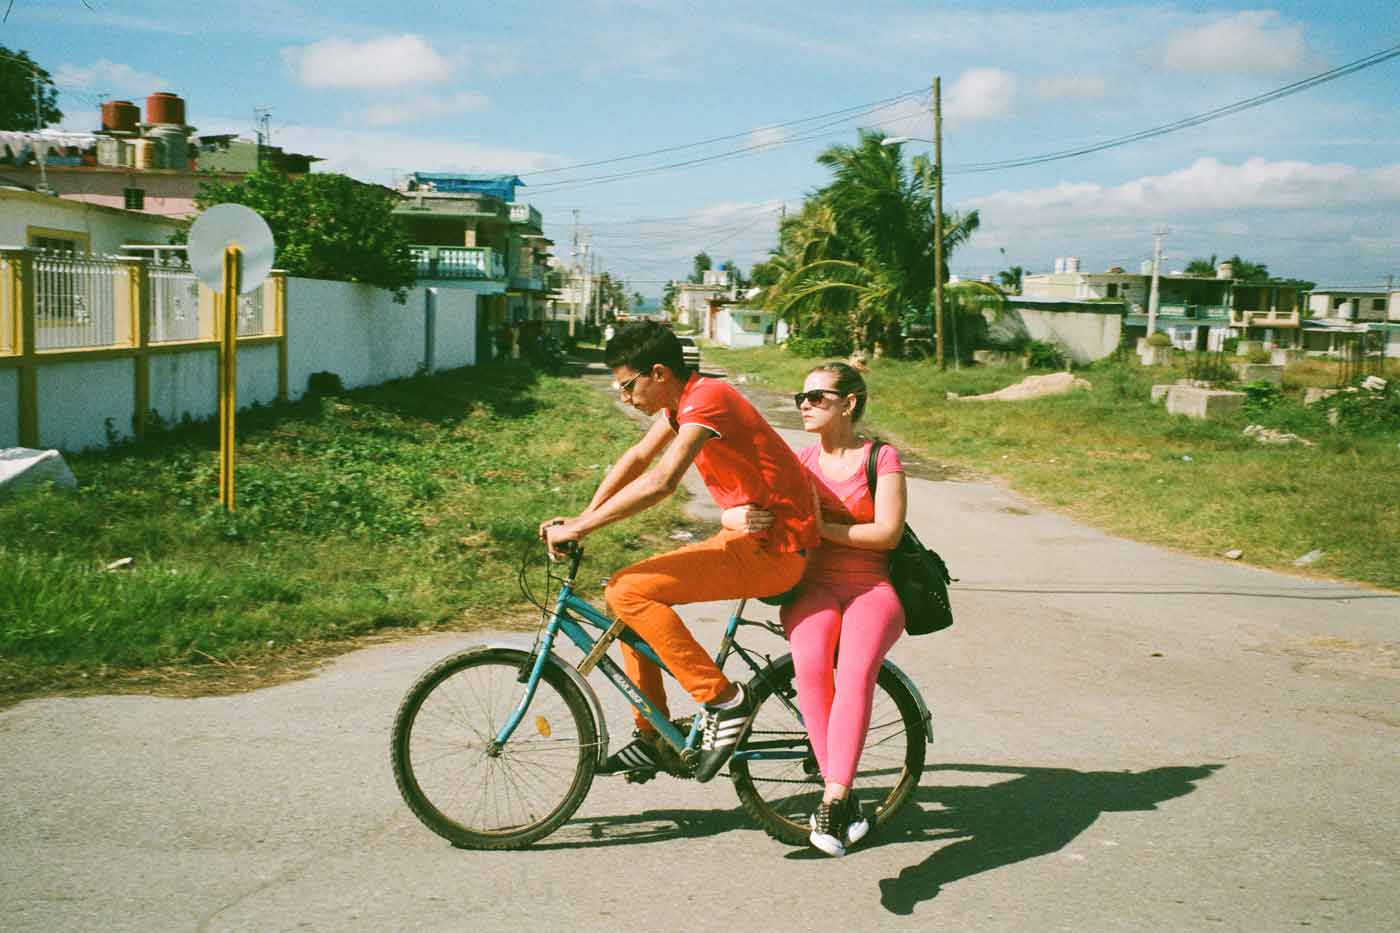 35mm-focal-length-guide-tips-beginner-documentary-story-telling-zone-focus-field-view-perspective-compression-angle-summilux-cuba-cienfuegos-film-photography-couple-bike